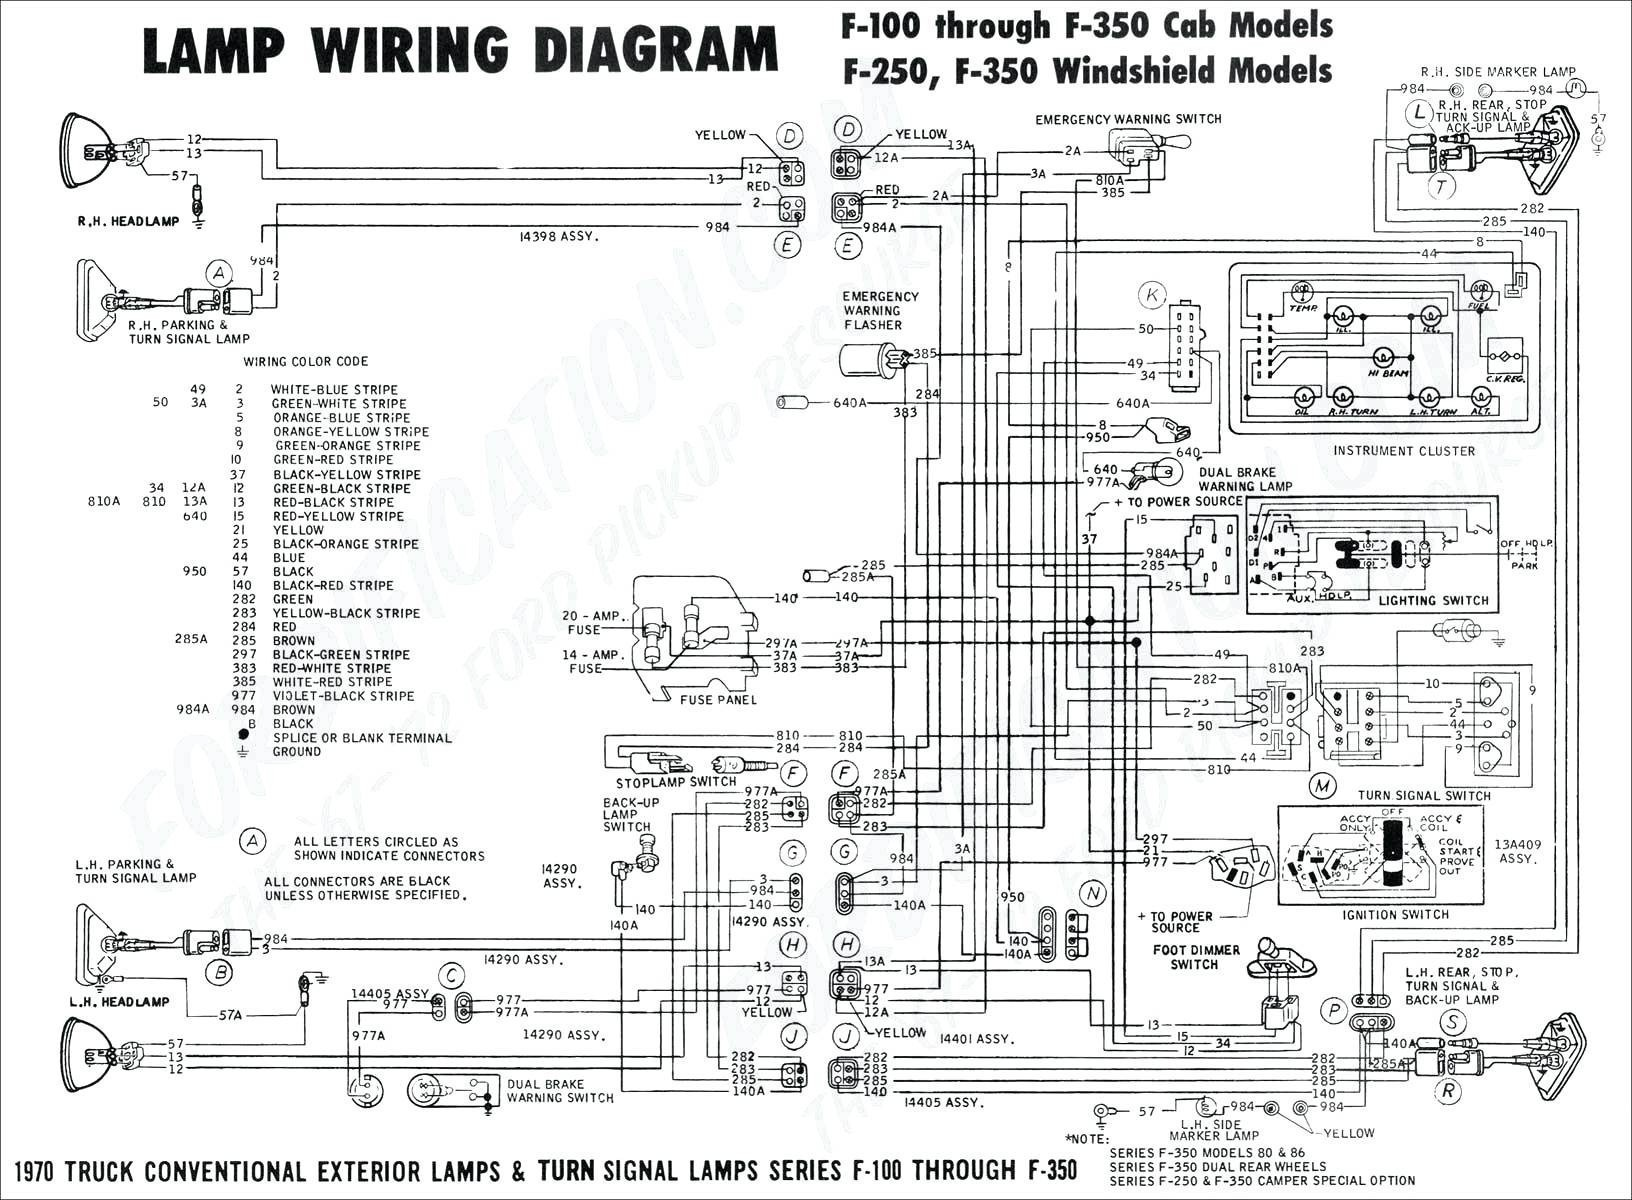 Car Ignition Switch Wiring Diagram Nissan Ignition Switch Wiring Diagram Valid 1995 ford F150 Ignition Of Car Ignition Switch Wiring Diagram